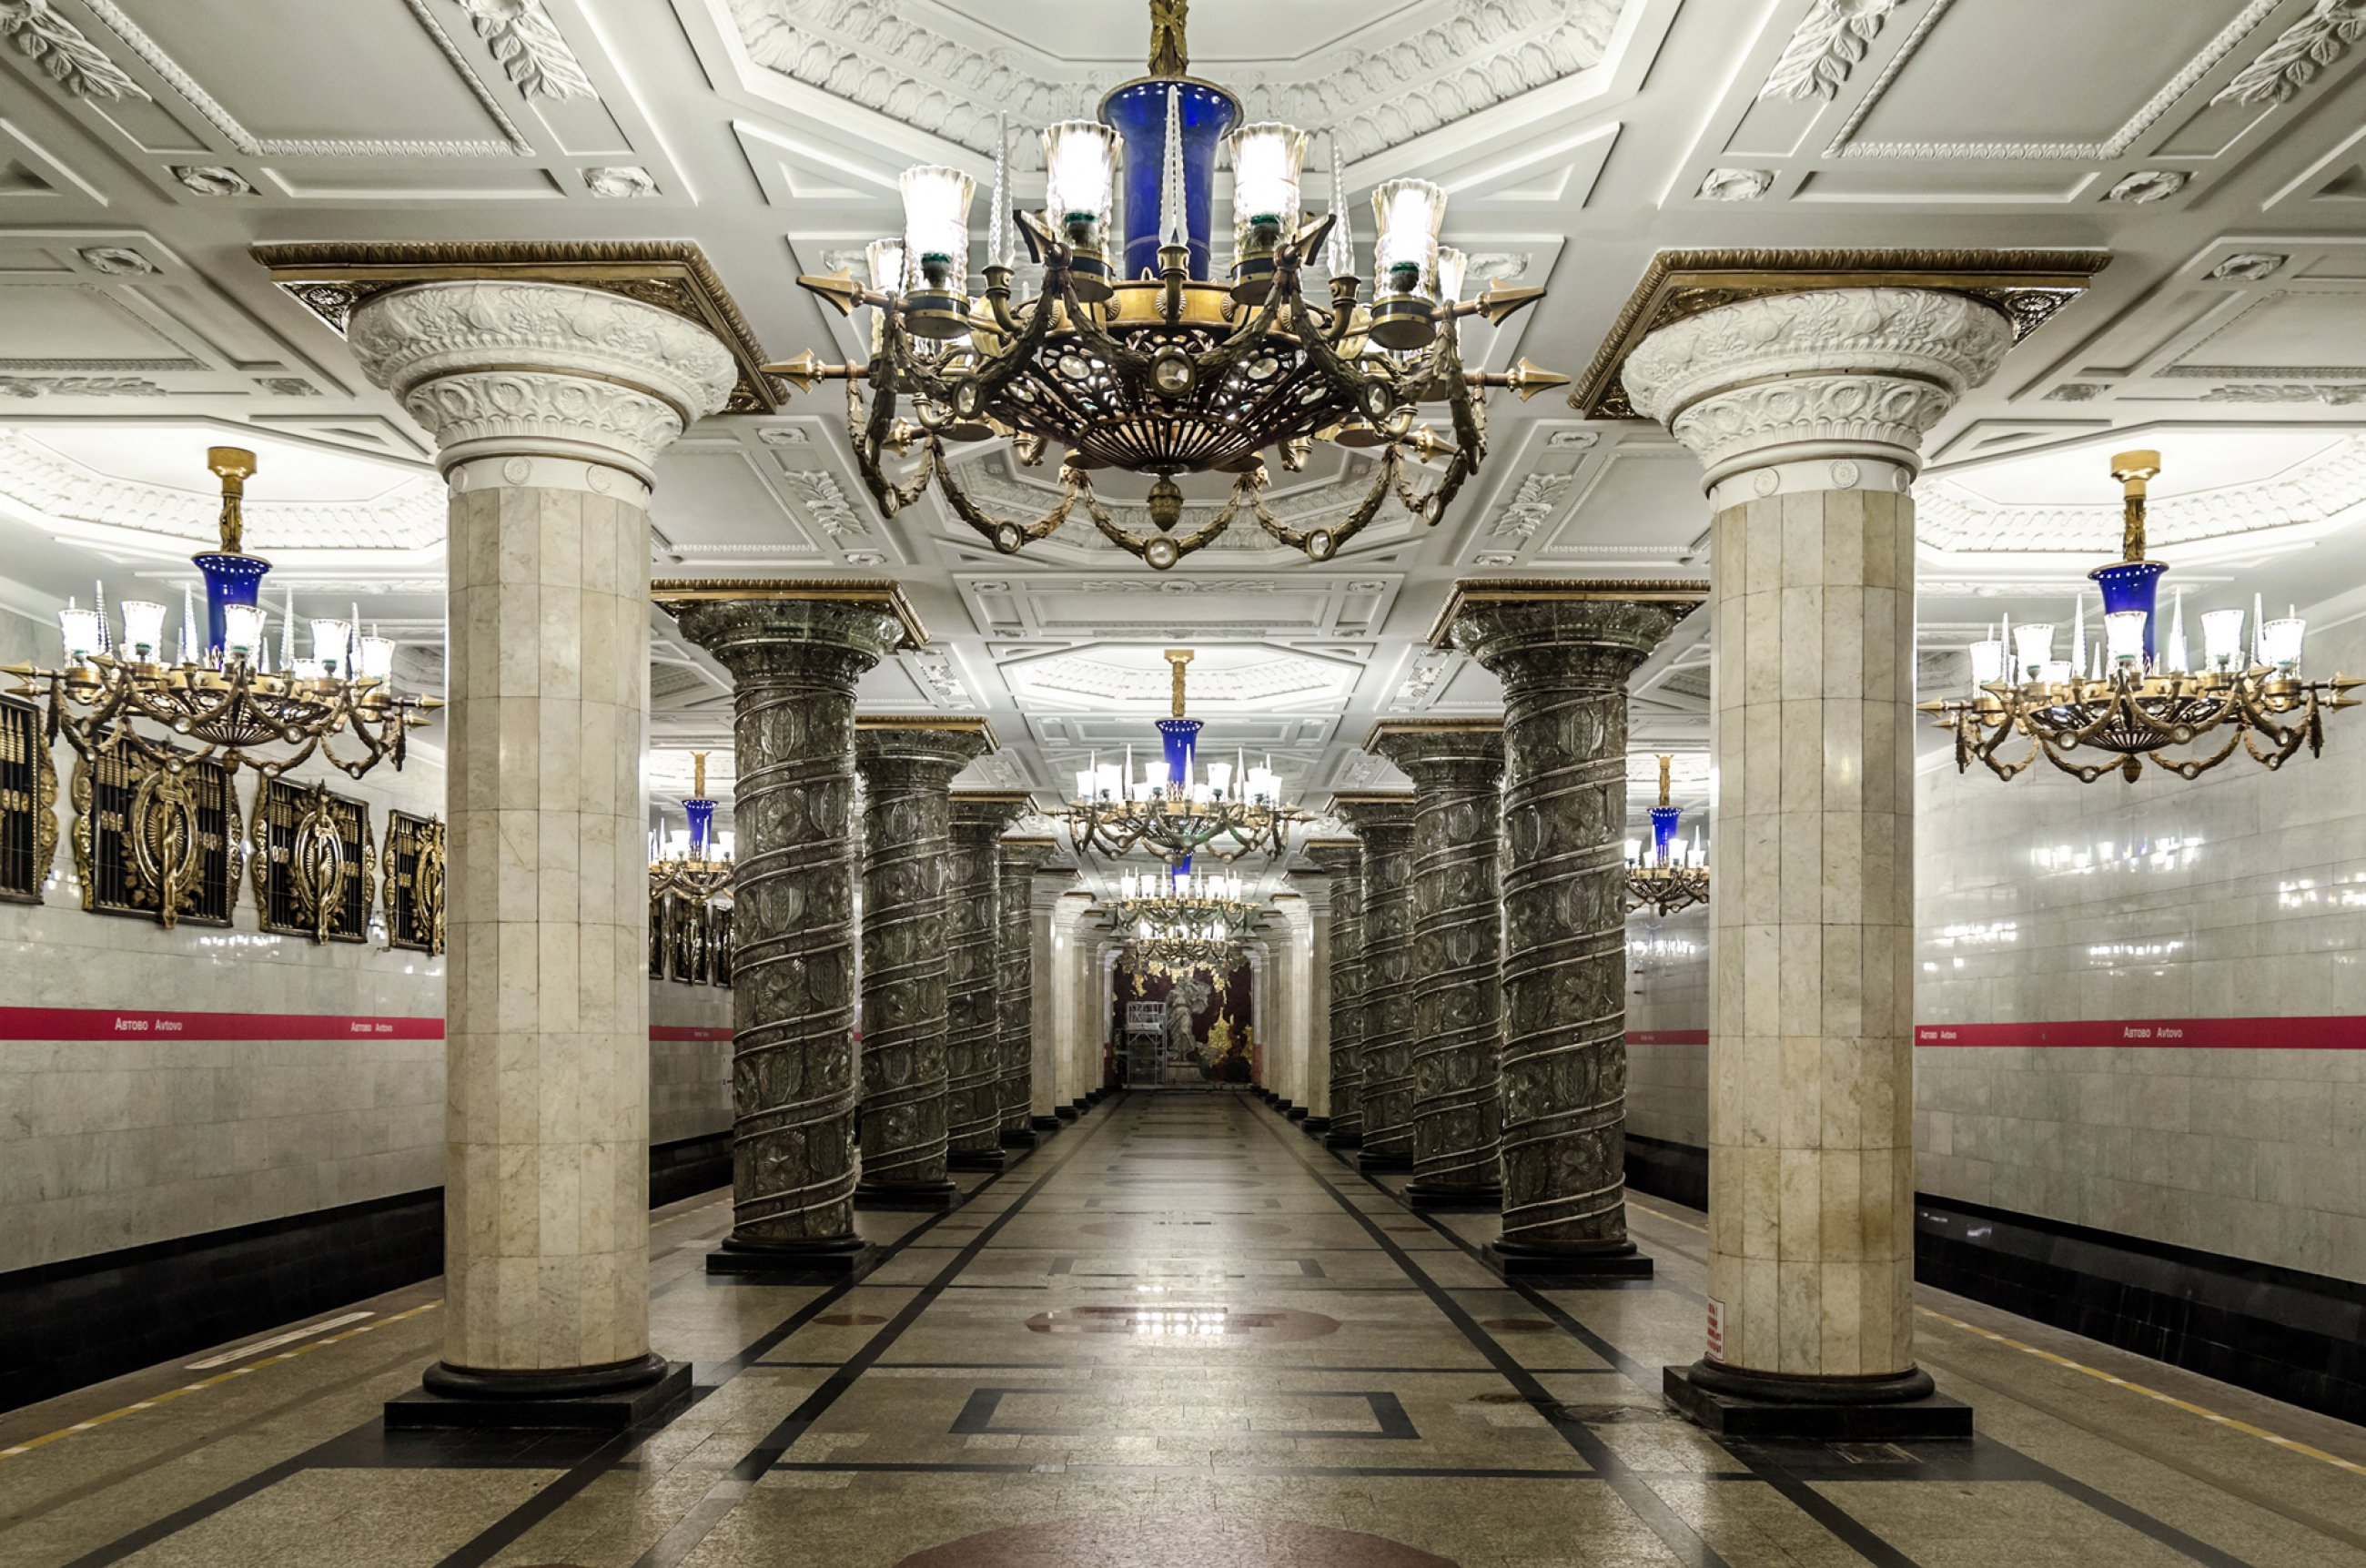 https://bubo.sk/uploads/galleries/16268/wikipedia-metro-spb-line1-avtovo.jpg